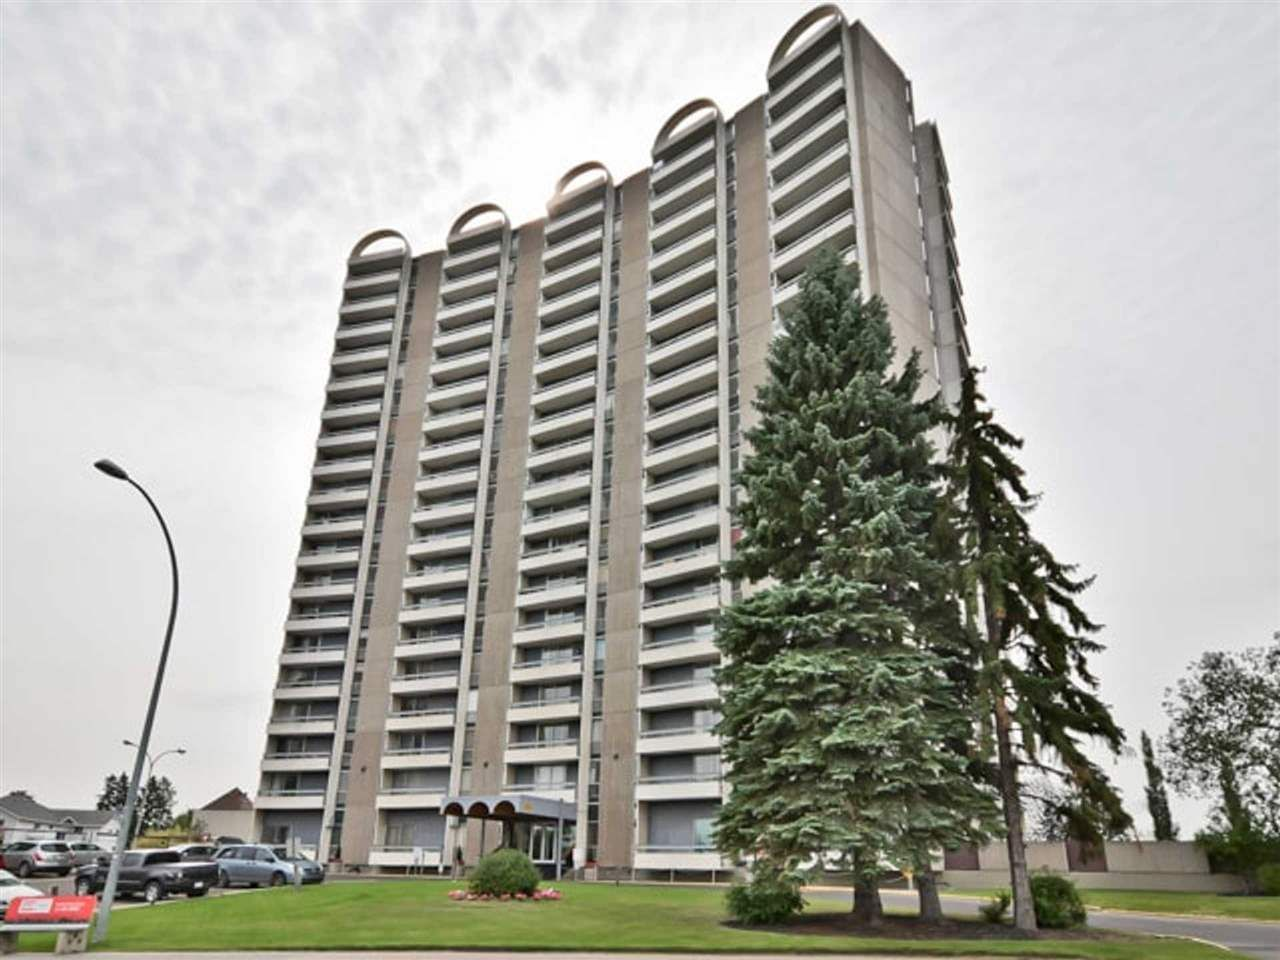 Main Photo: 2007 10883 SASKATCHEWAN Drive in Edmonton: Zone 15 Condo for sale : MLS®# E4241770